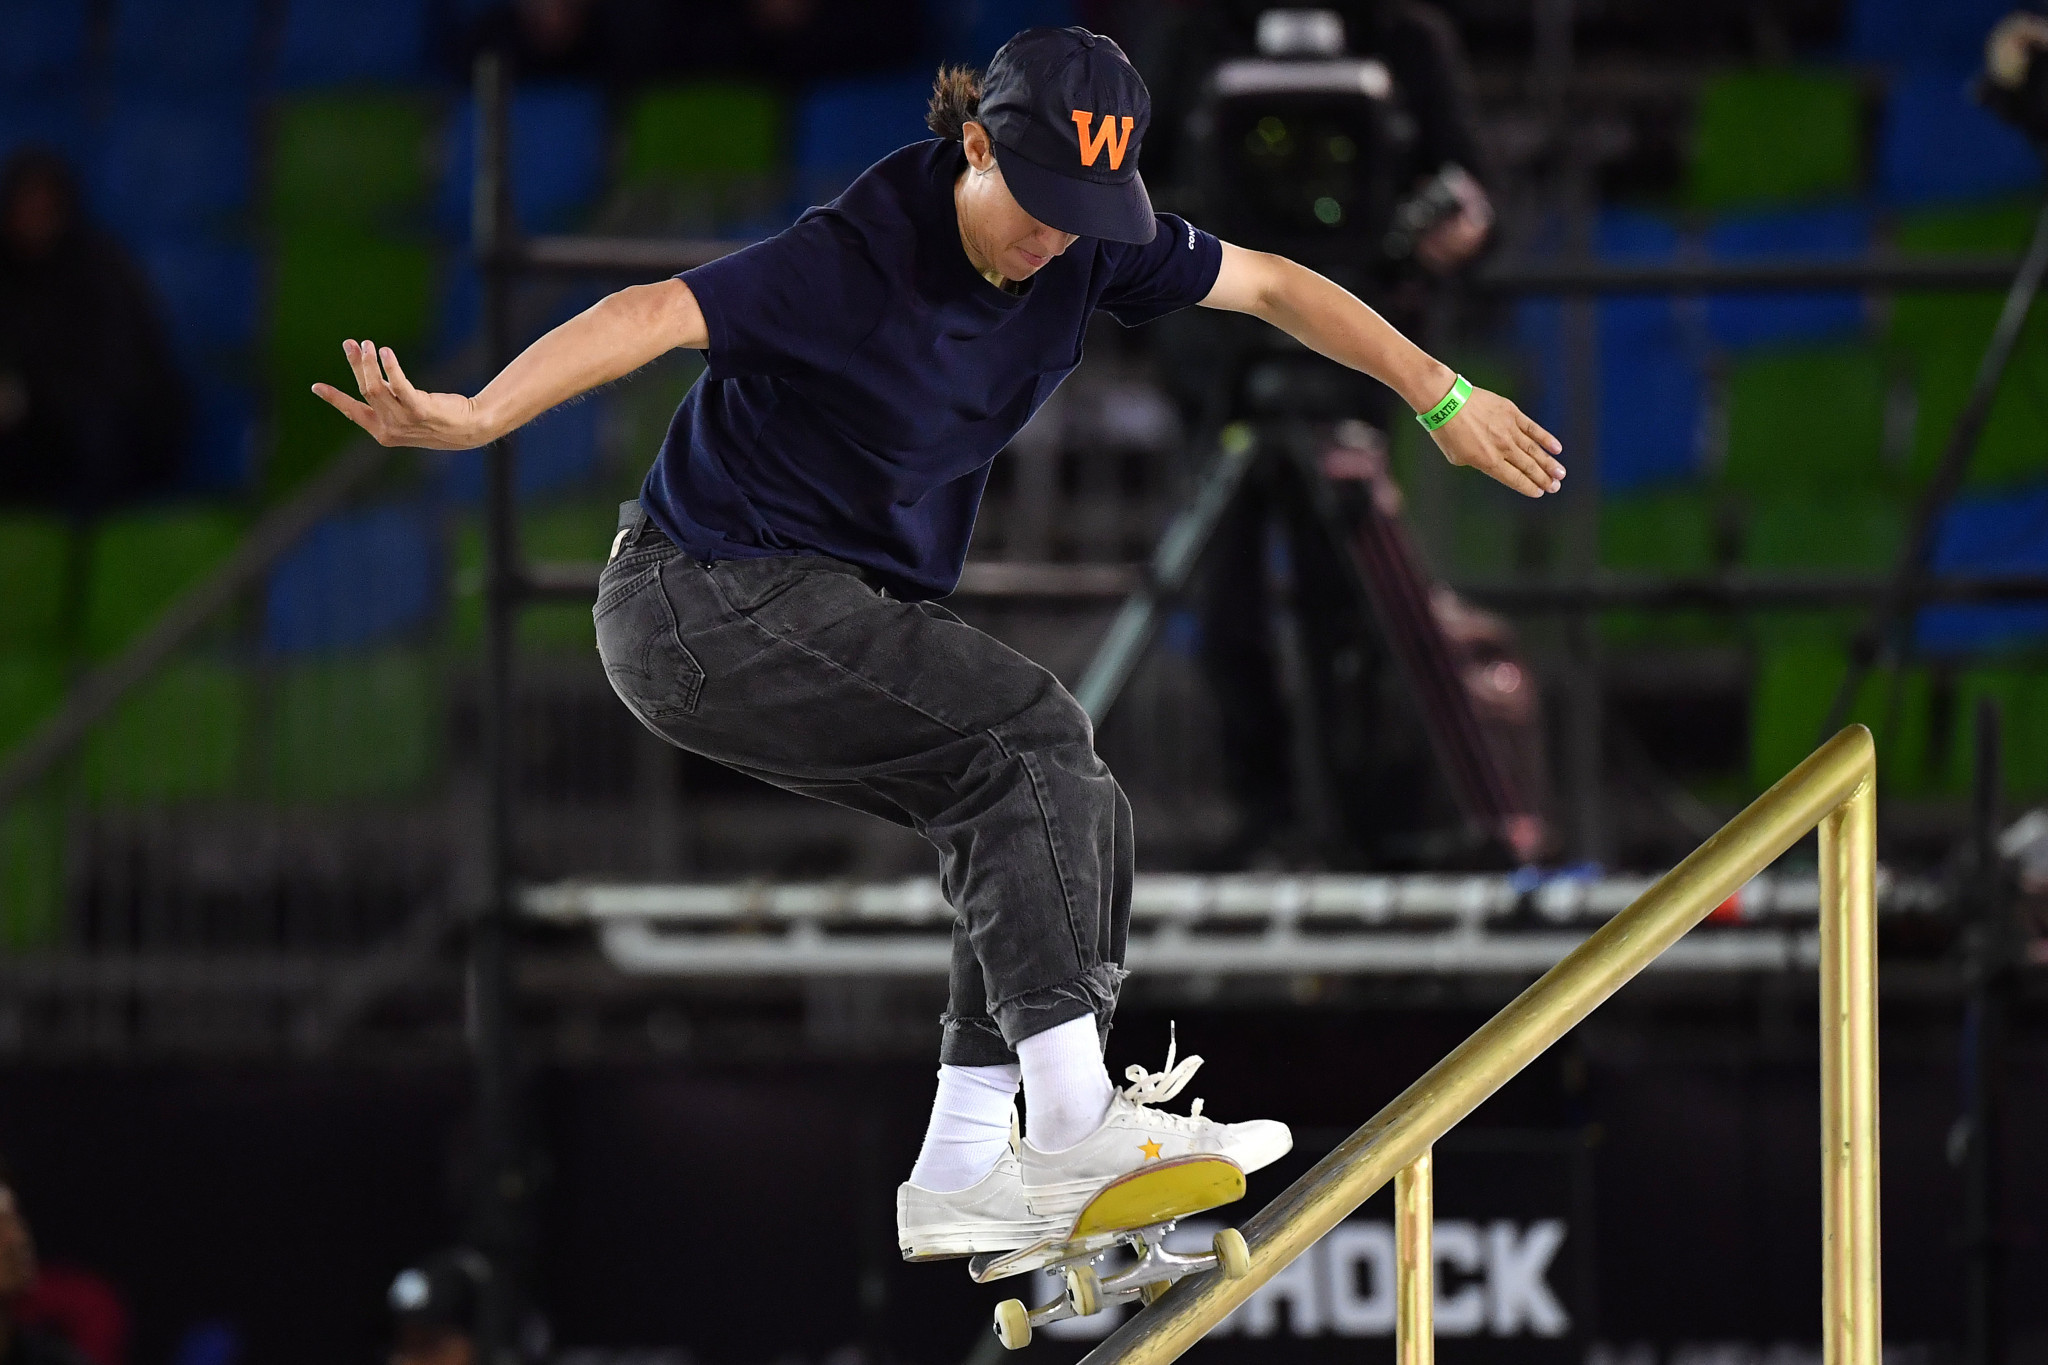 World Skate announce rights agreement with Mediapro Group